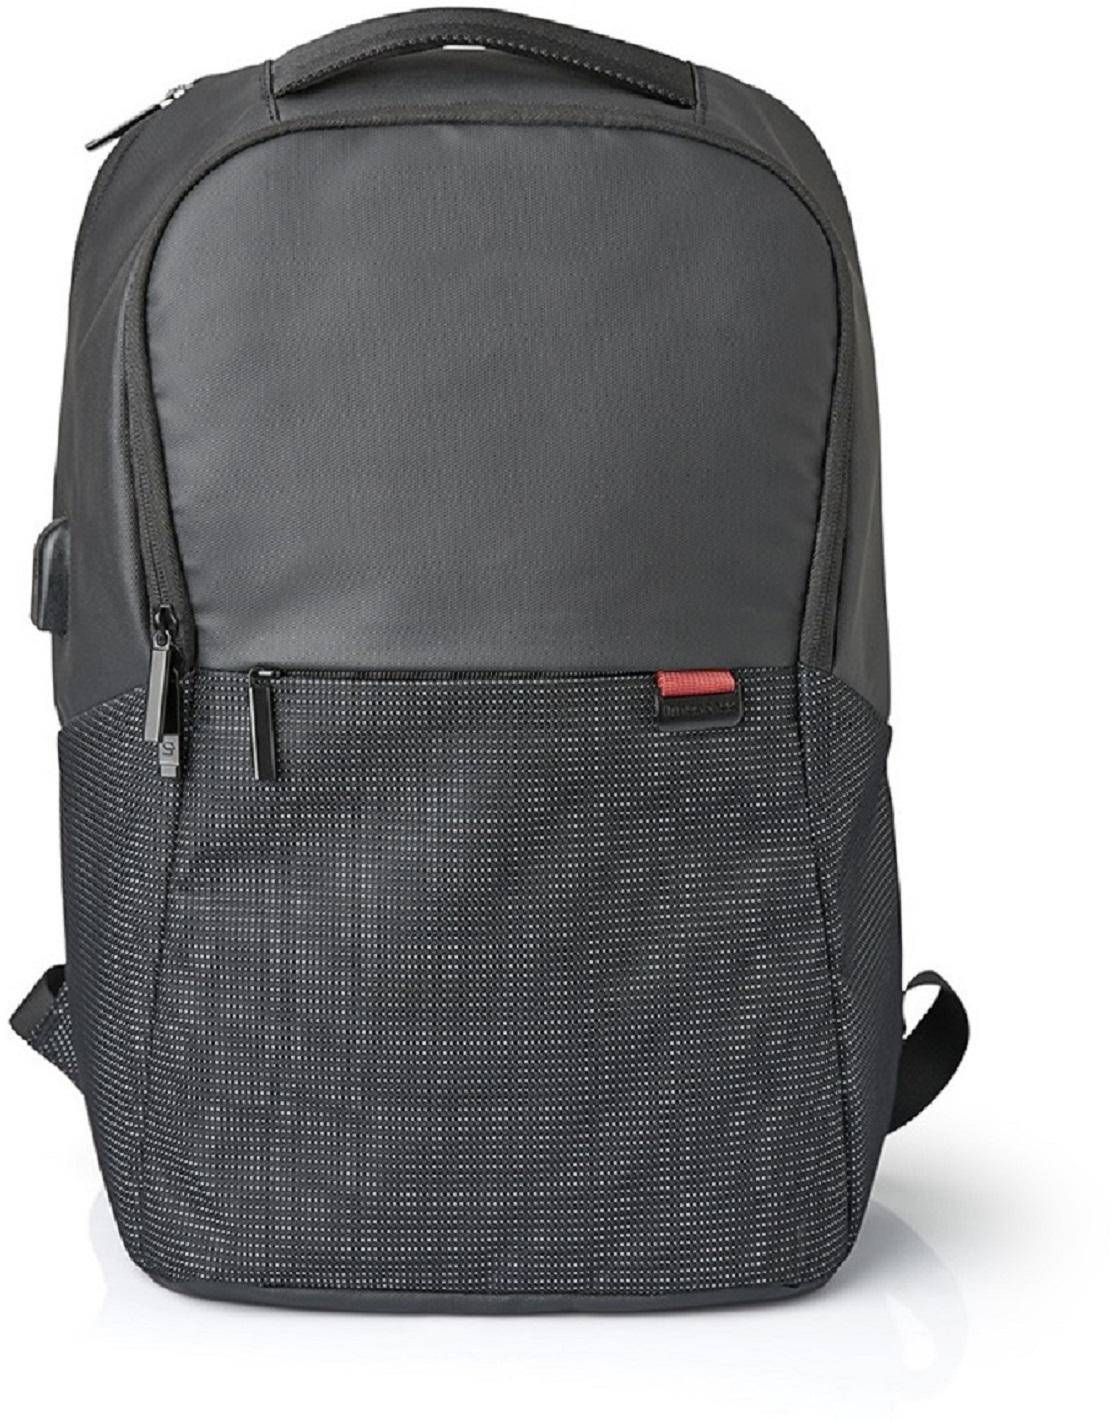 Neopack Bolt Backpack 15 inches for Laptops and Macbooks zoom image